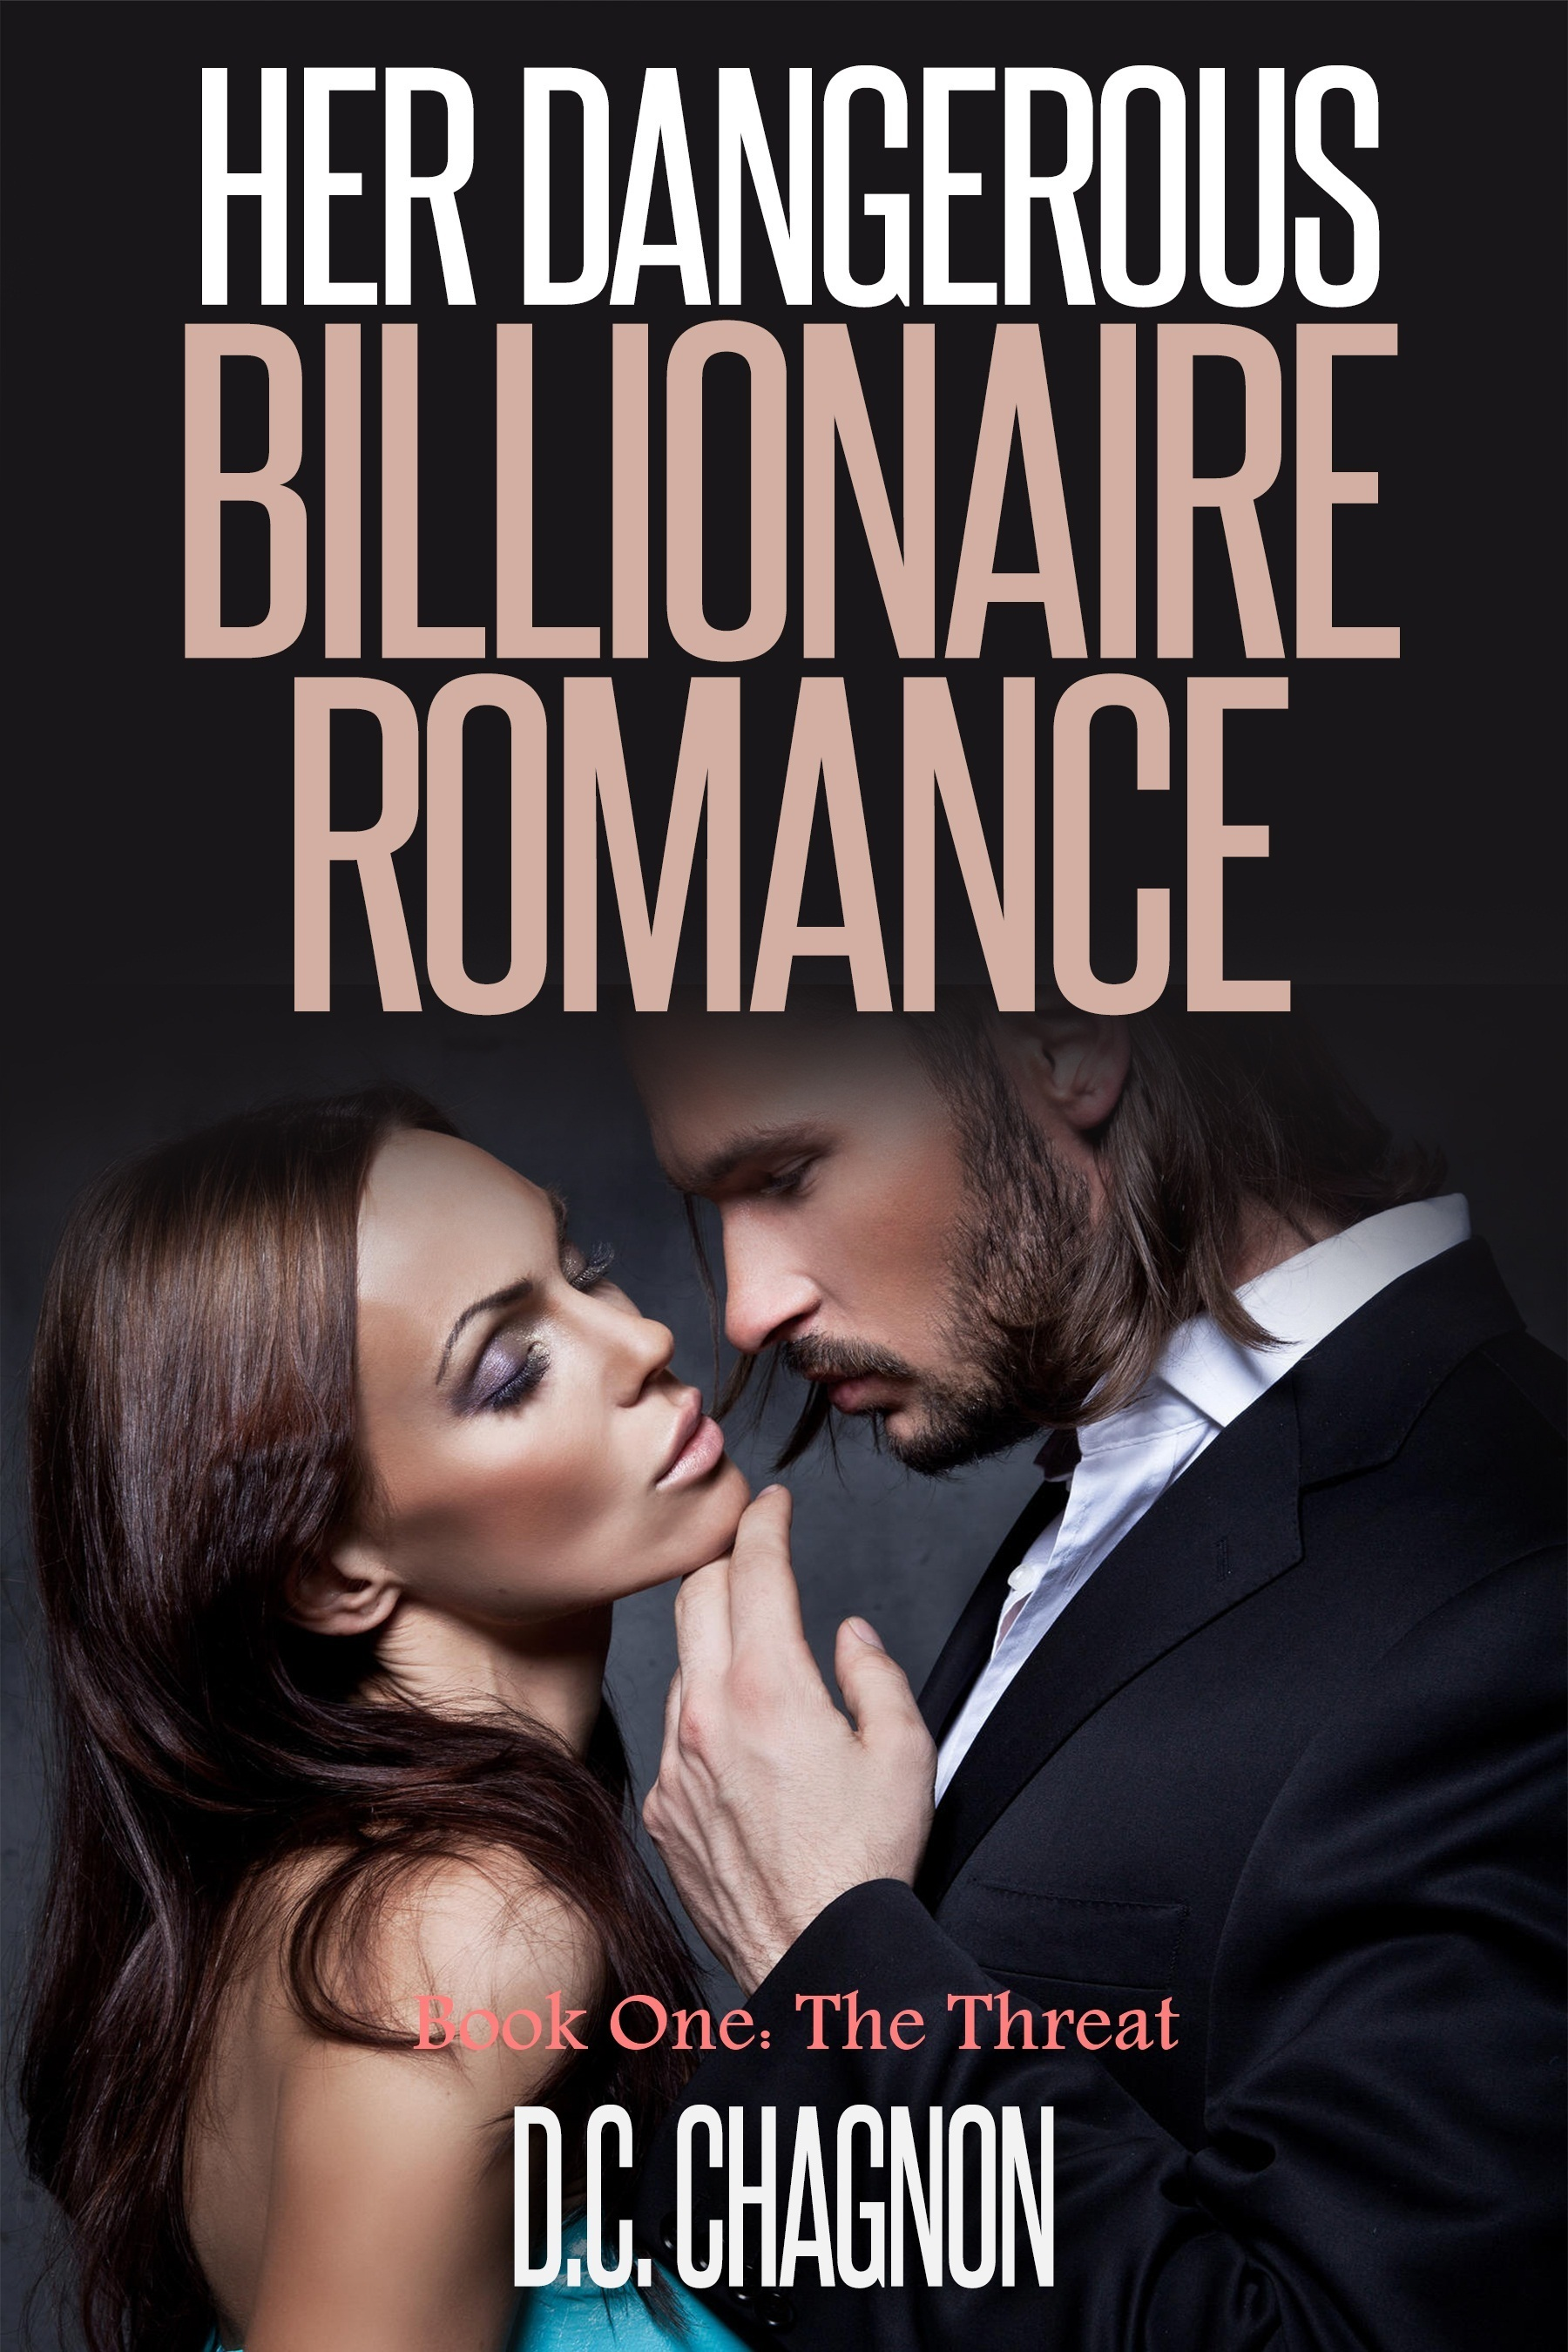 Her Dangerous Billionaire Romance, Book One: The Threat D.C. Chagnon